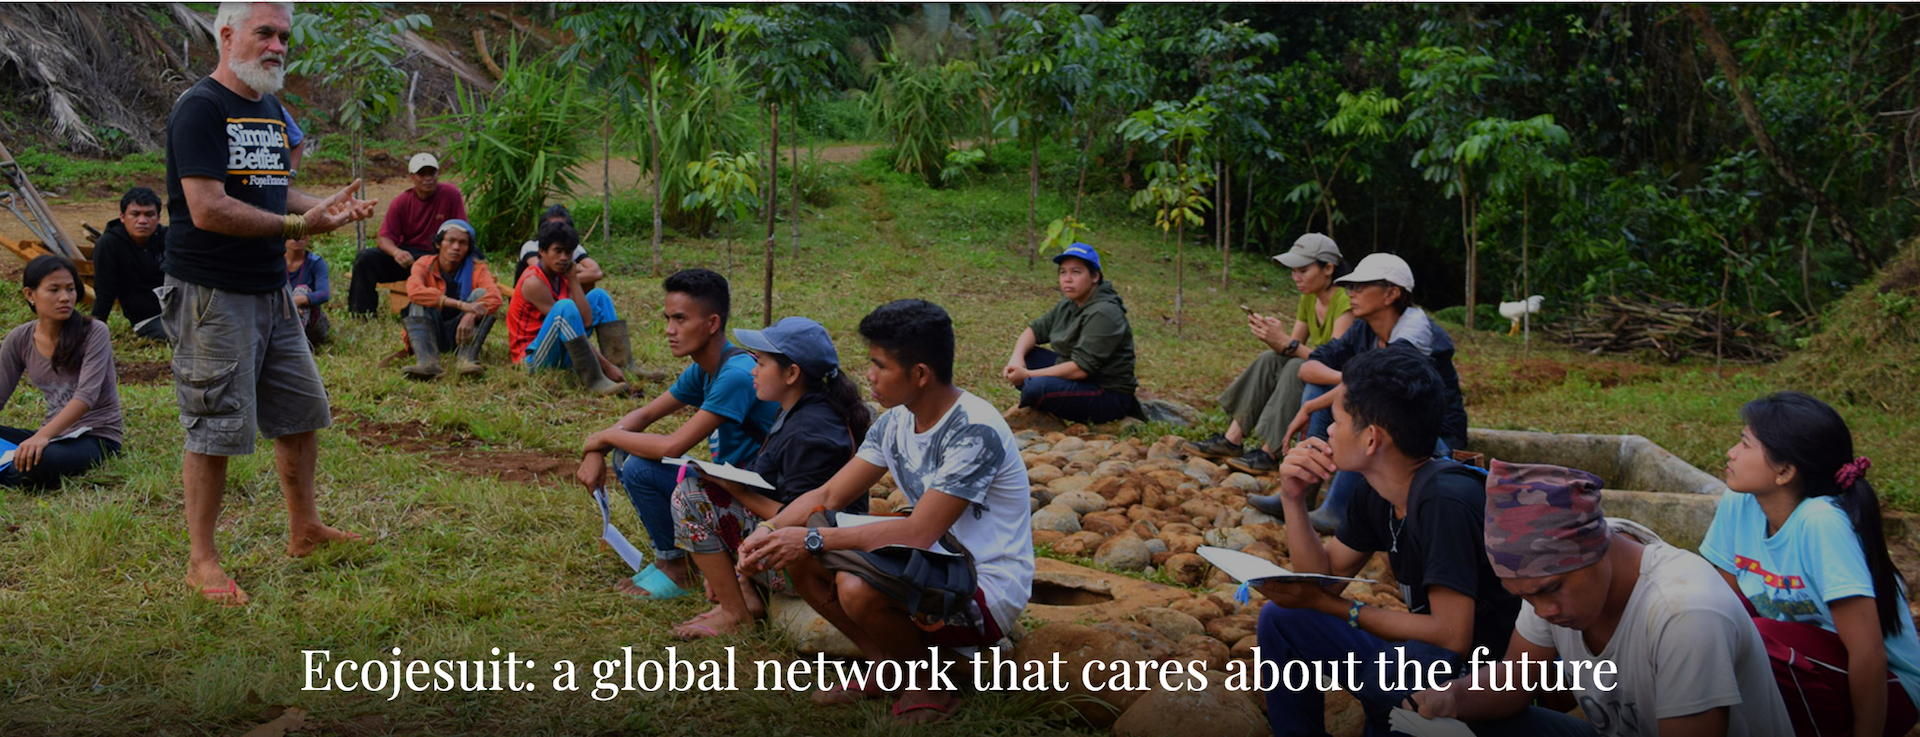 Ecojesuit as a global network that cares about the future